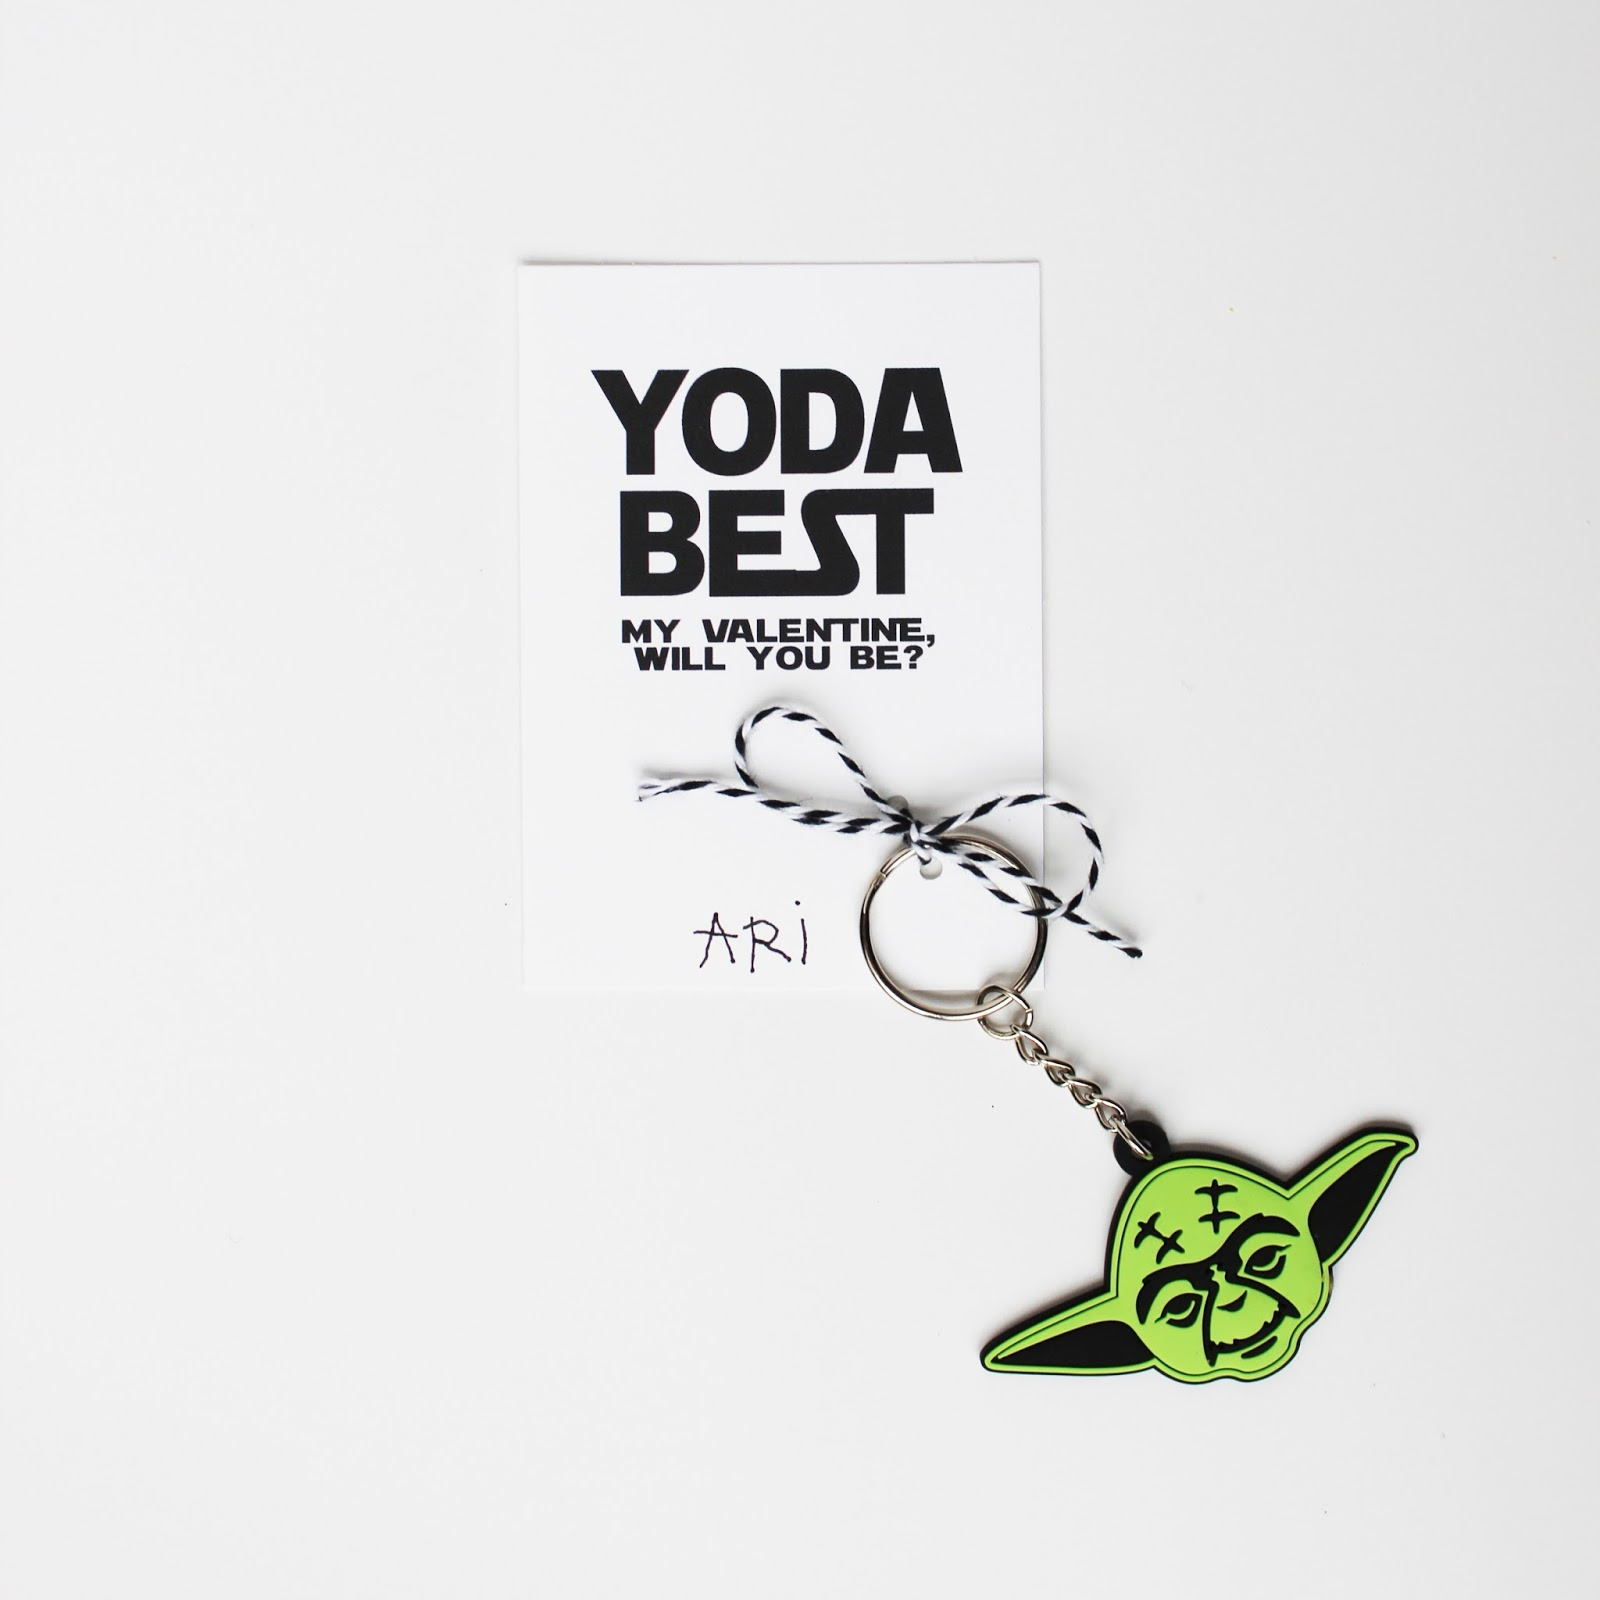 photo regarding Yoda Printable called YODA Most straightforward Training course VALENTINES (Totally free PRINTABLE)